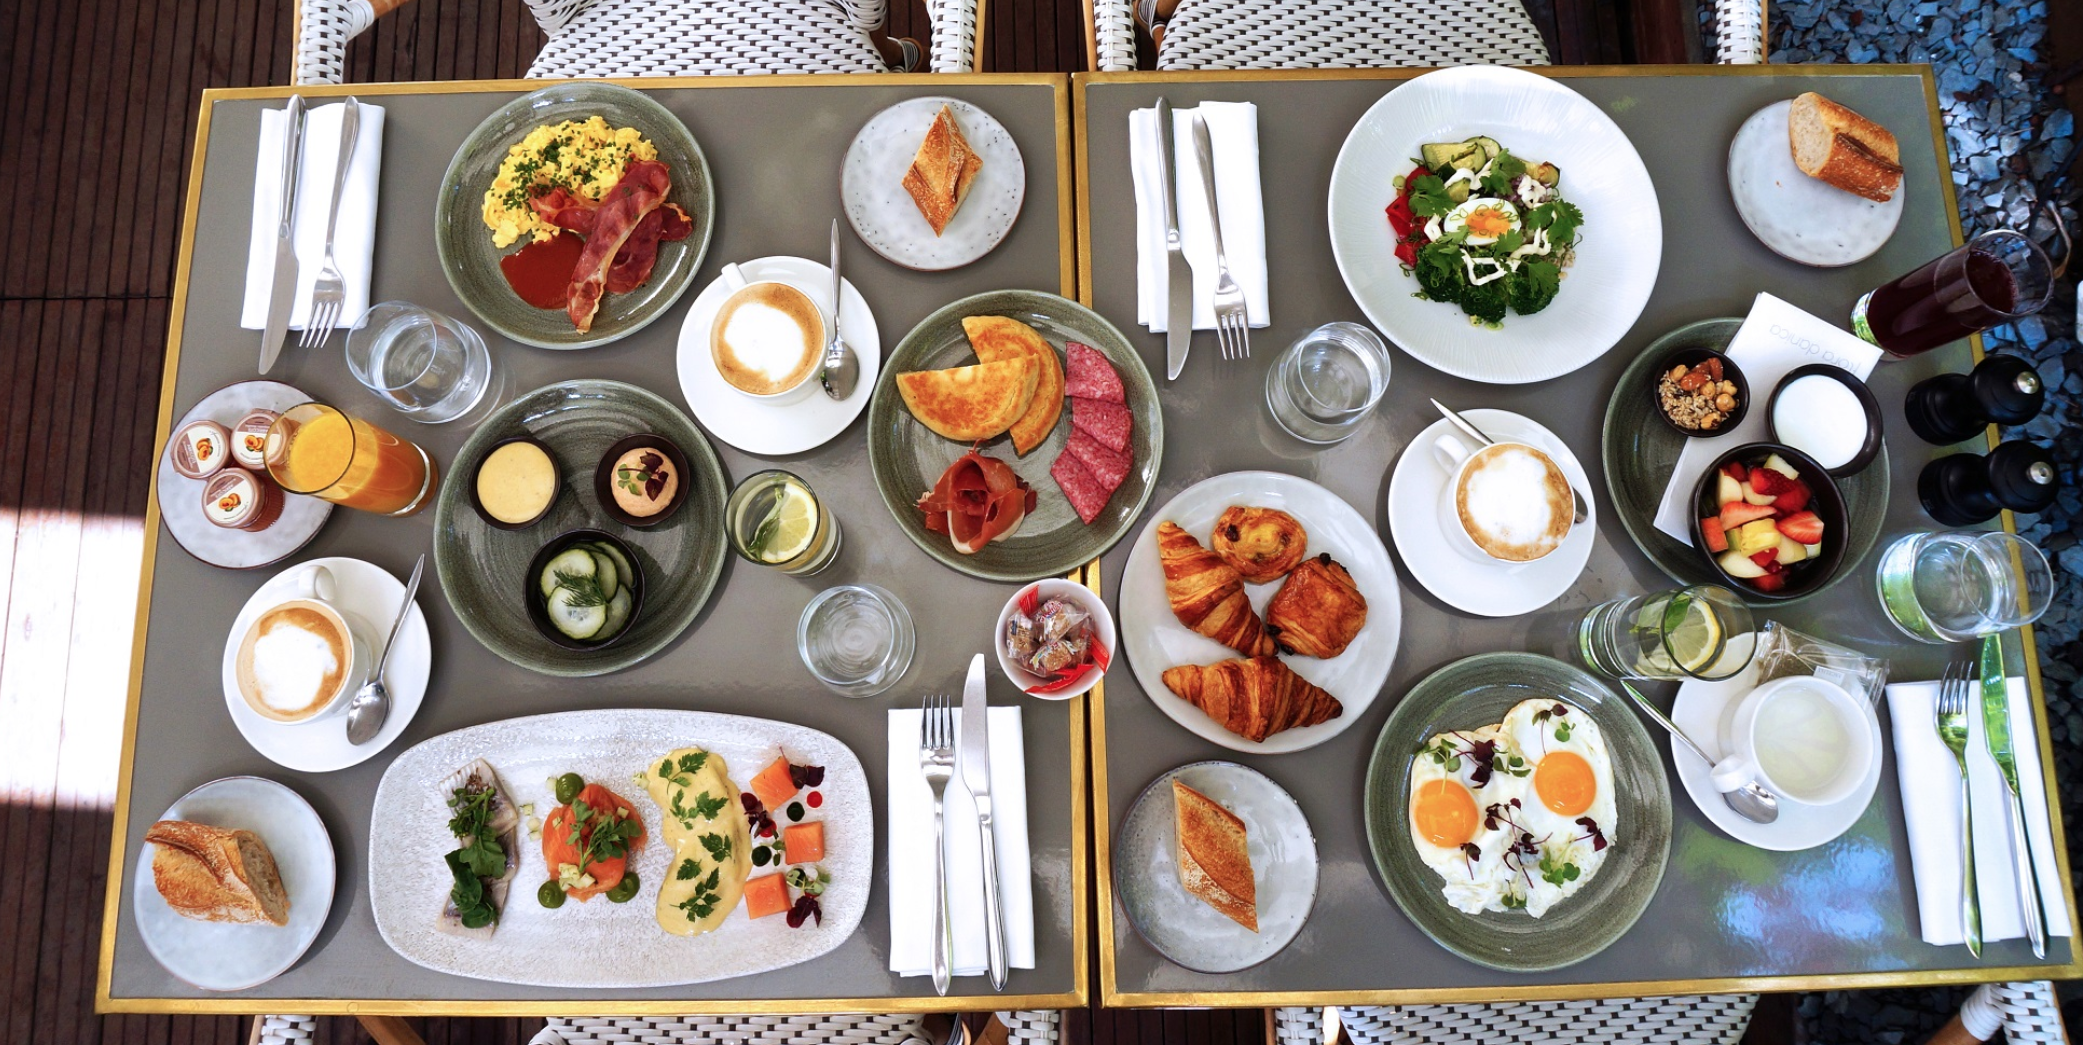 Brunch Paris Terrasse Les Meilleurs Brunch En Terrasse Paris Select